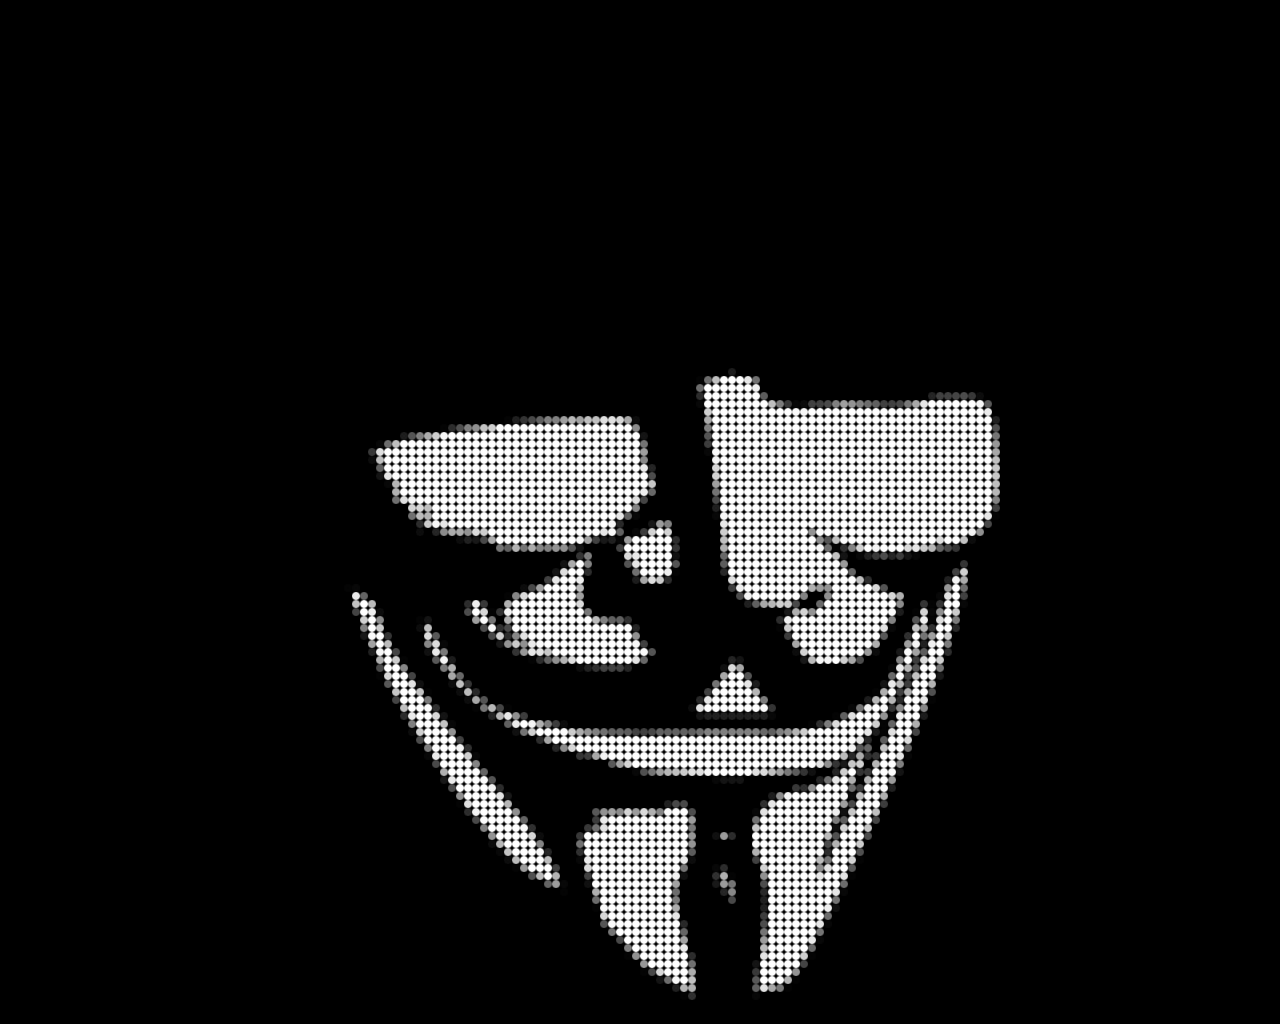 V for Vendetta wallpapers - Taringa!